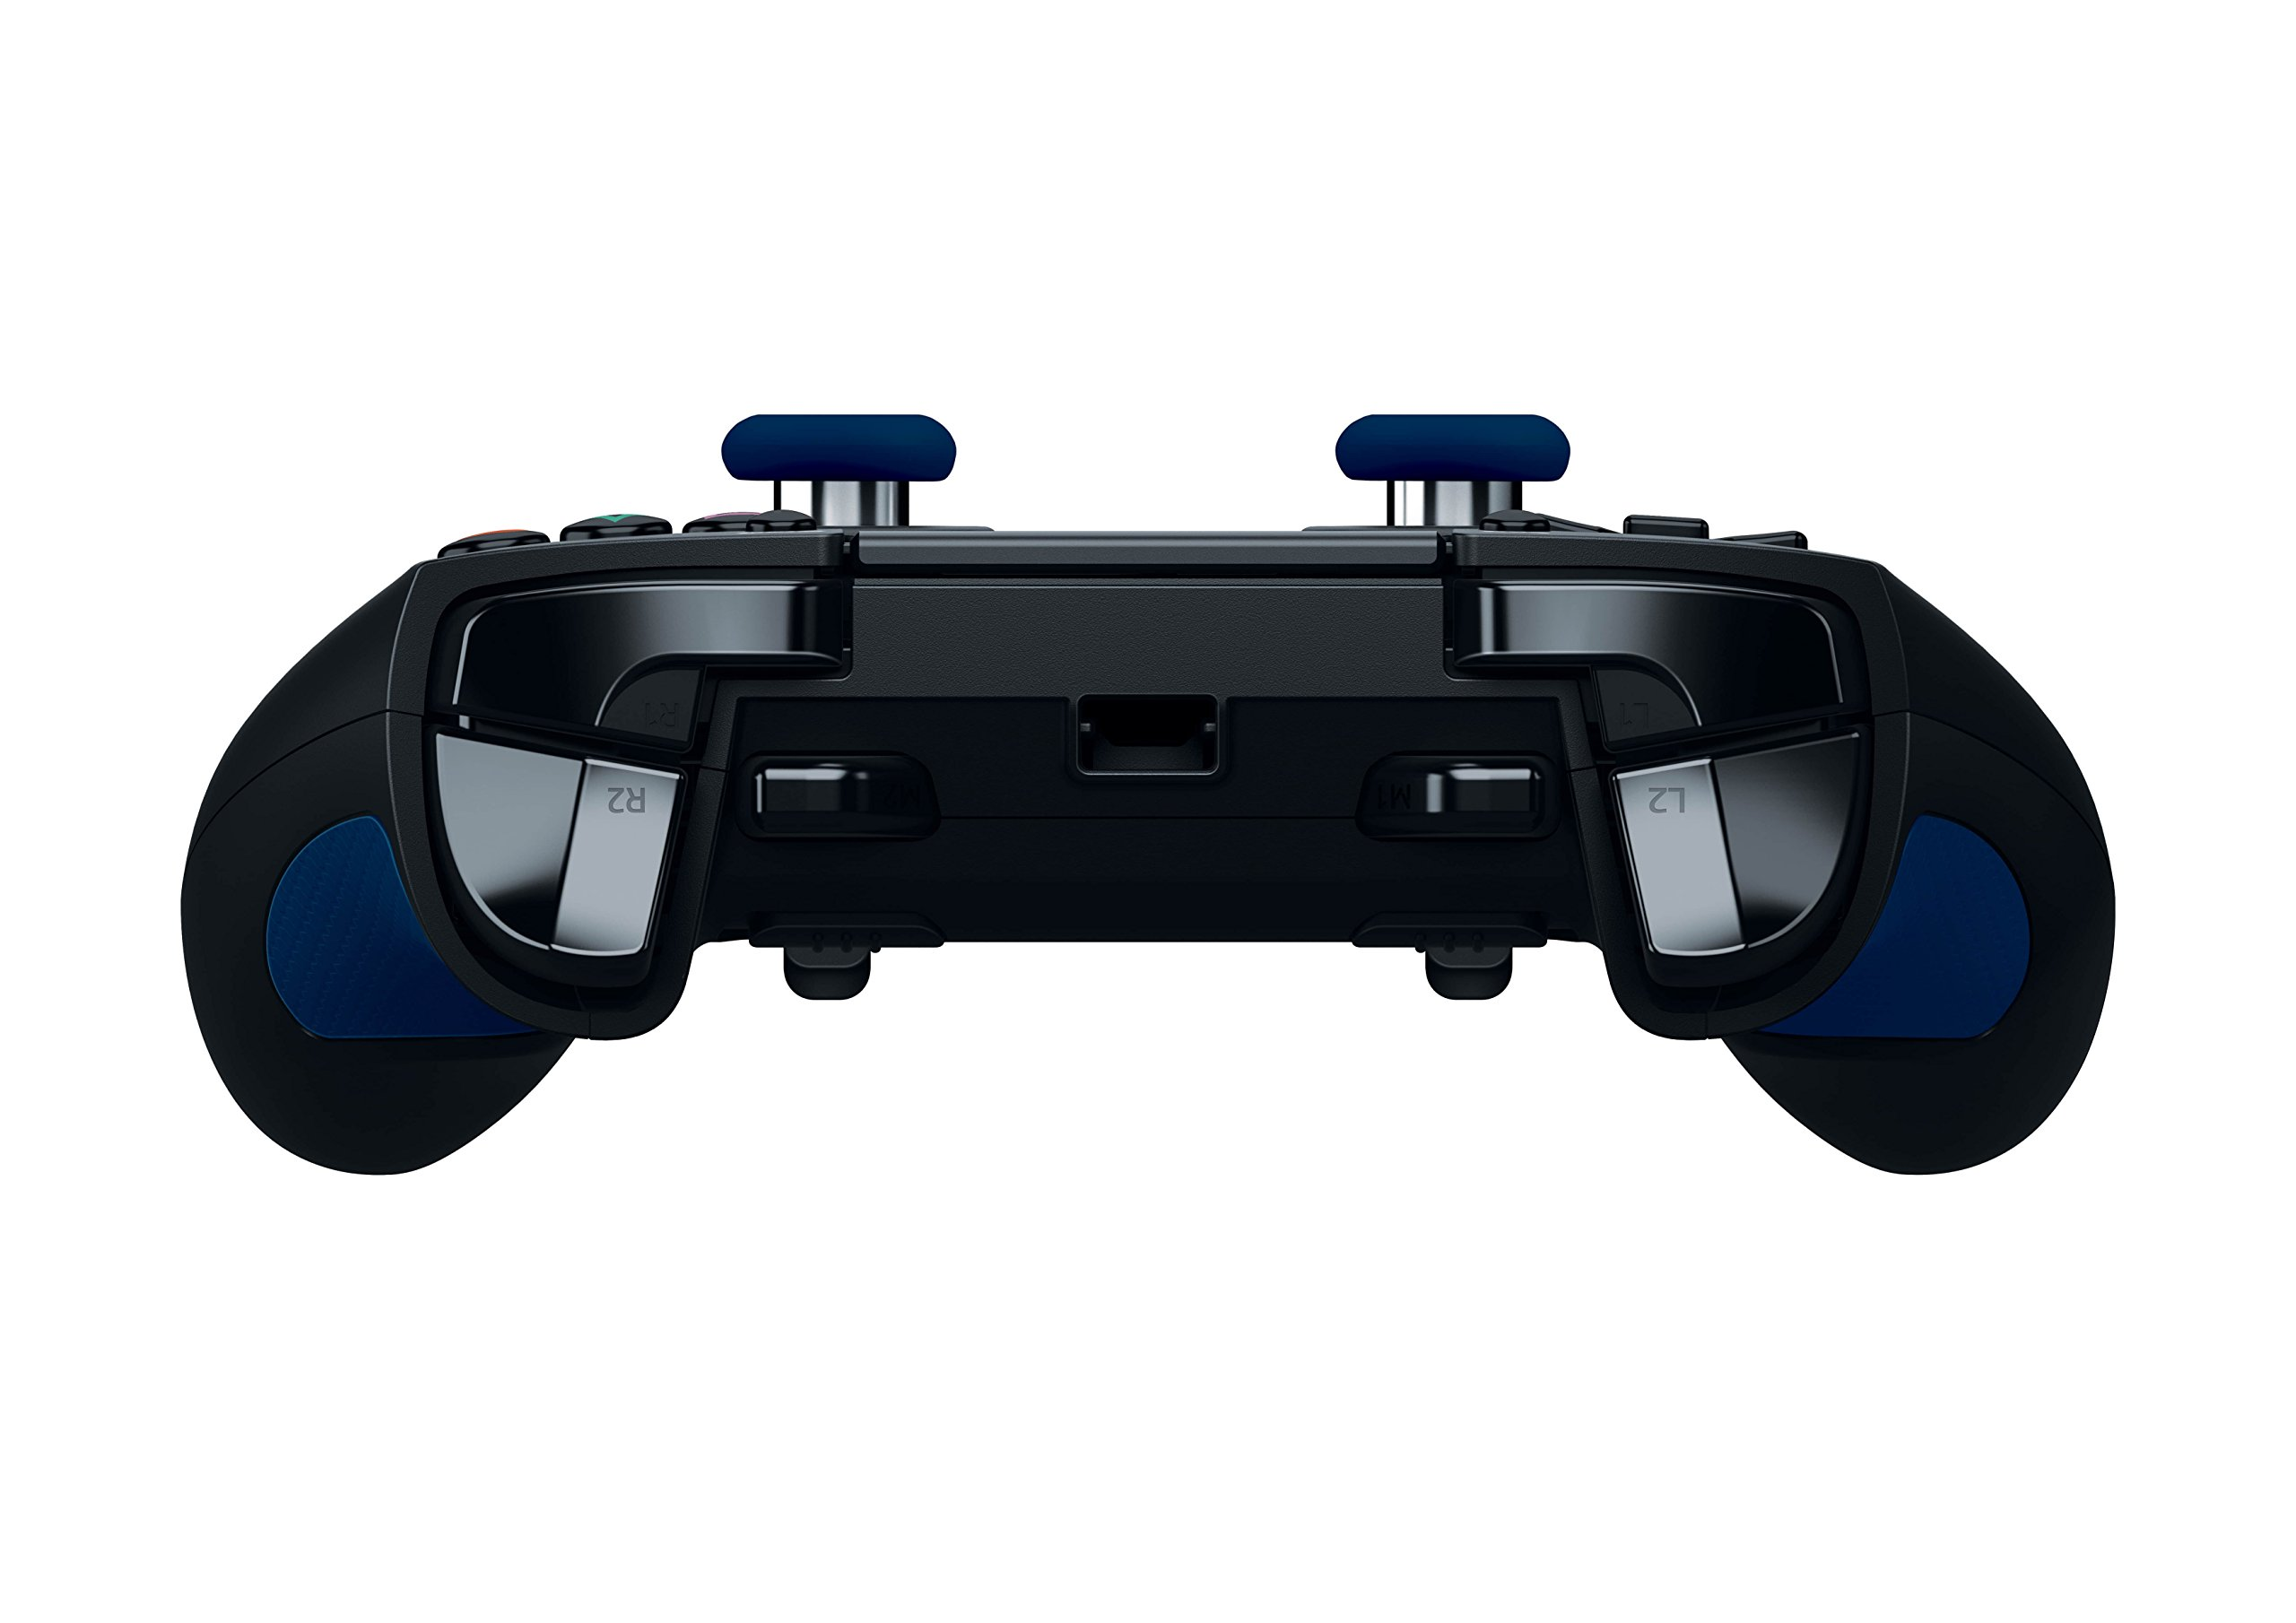 Razer Raiju - Next-Gen Premium Gaming Controller for PlayStation 4 - Fully-Programmable Hyper-Responsive Buttons, Blue by Razer (Image #3)